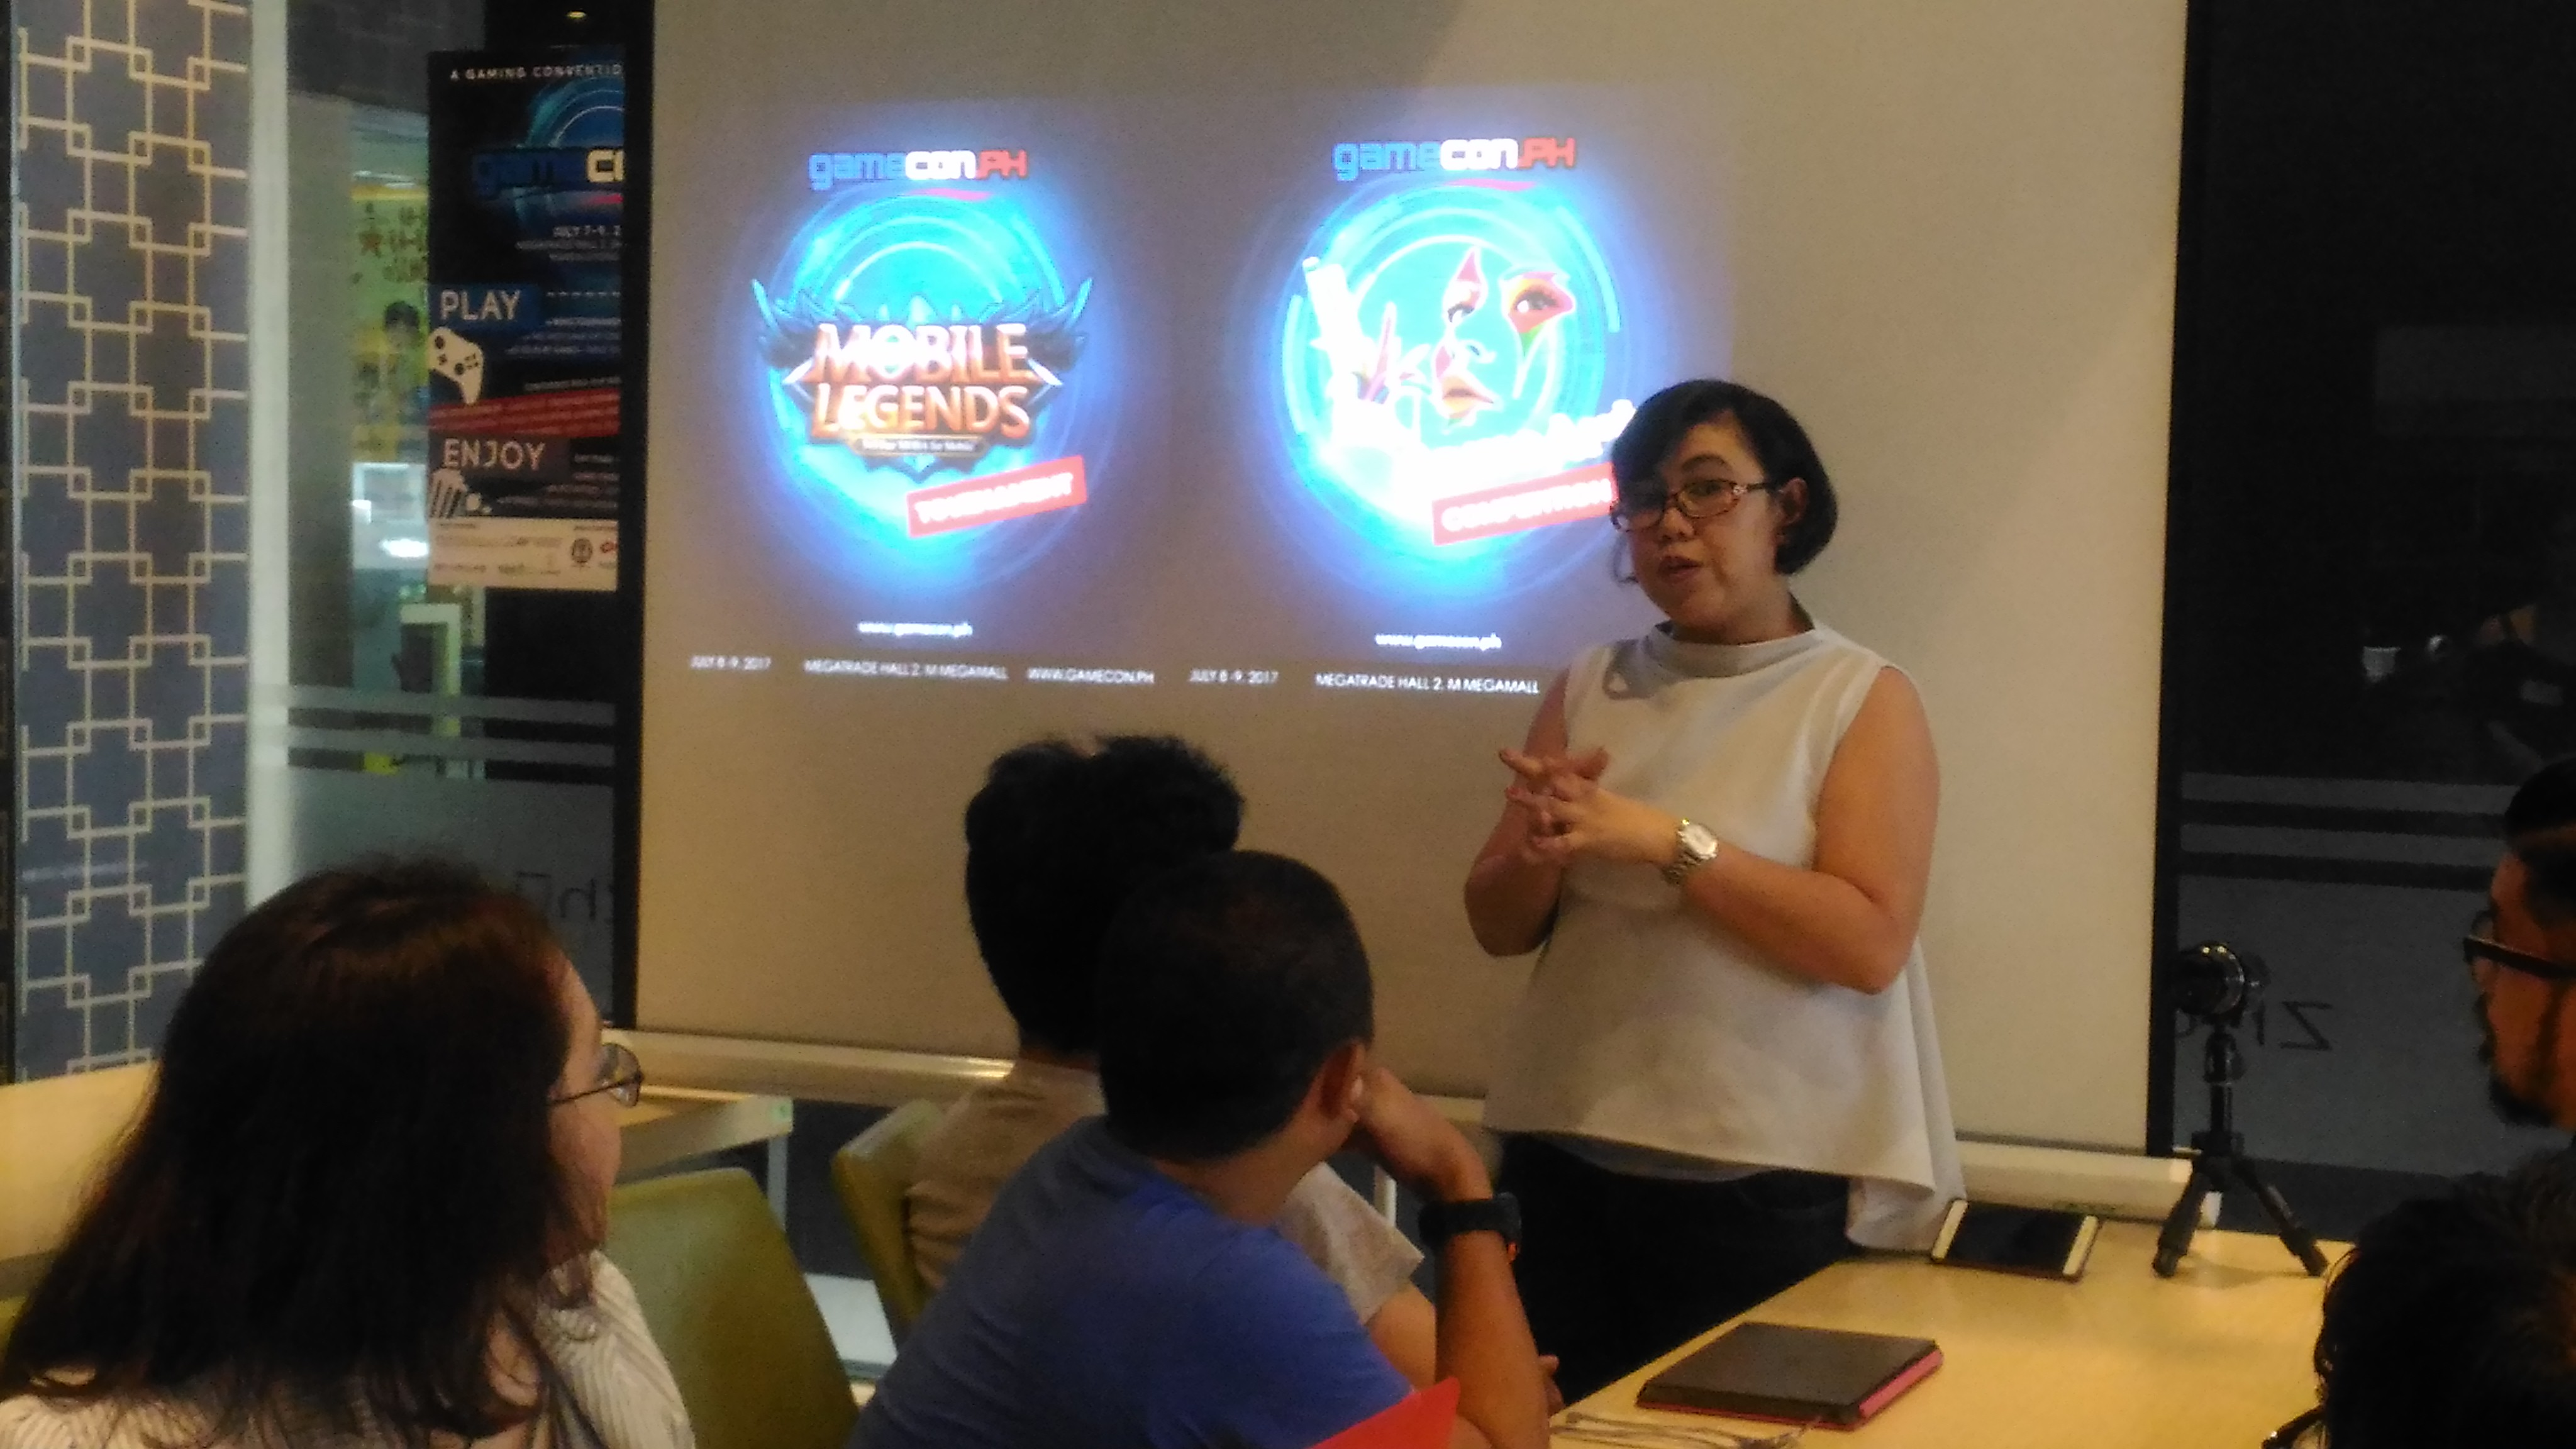 Ms Elaine Cedillo discussing about what's happening during #GameConPH during their media launch. To all Mobile Legends fanatics, rejoice coz there's a competition happening on #GameConPH!